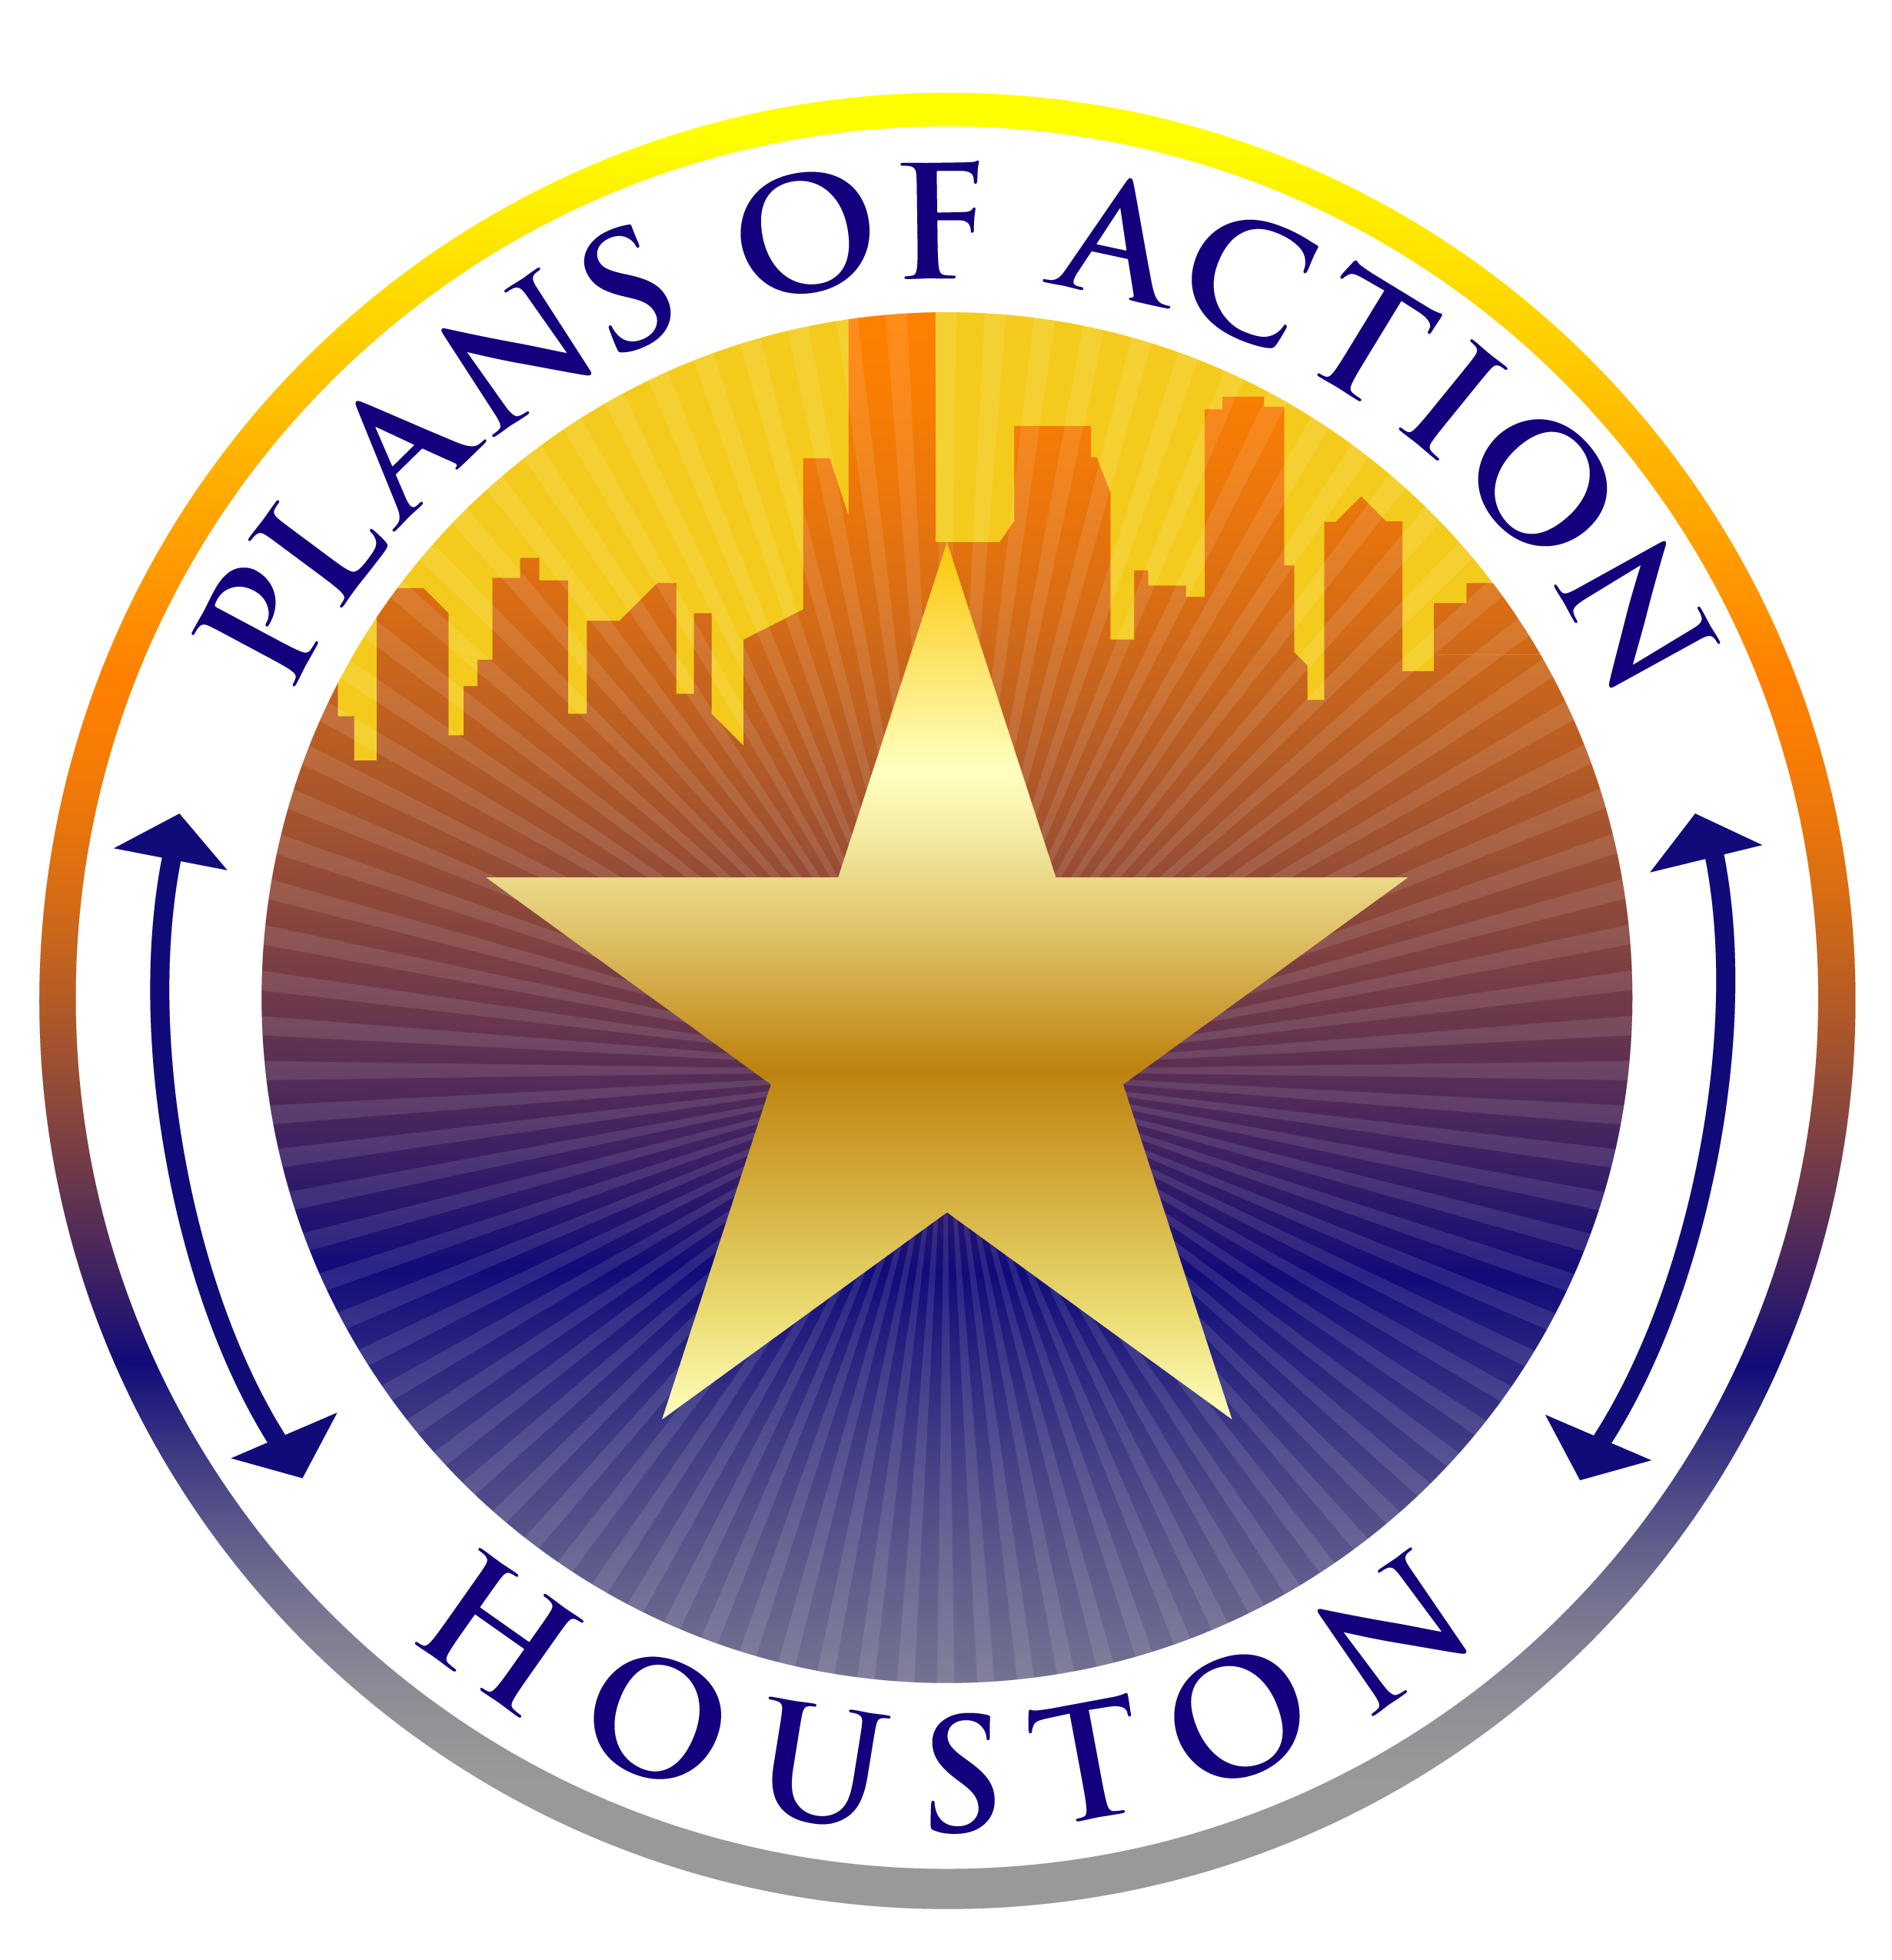 Plans of Action Houston